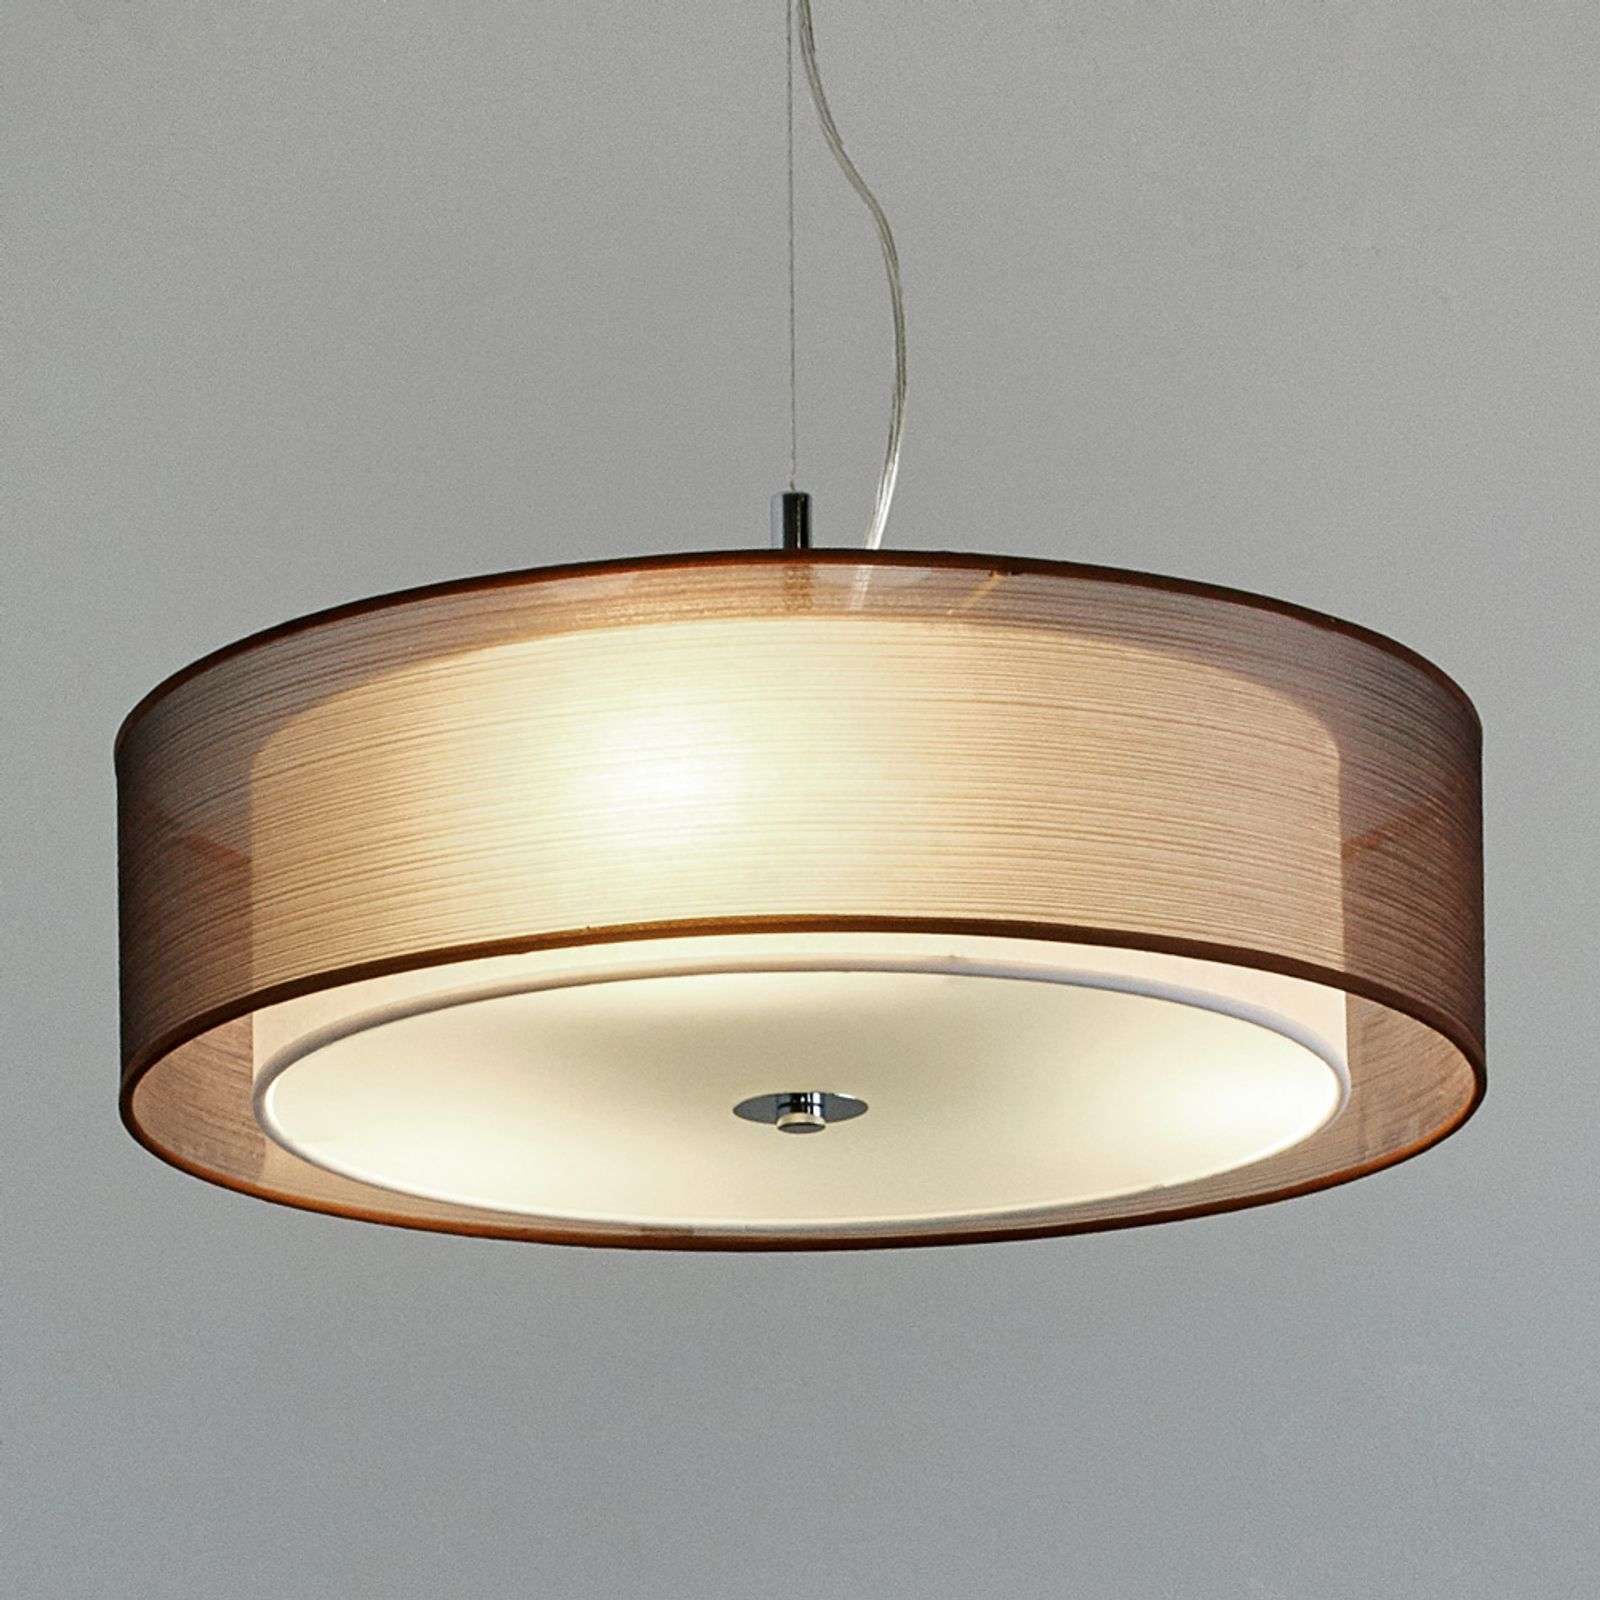 Suspension tissu LED Pikka couleur chocolat